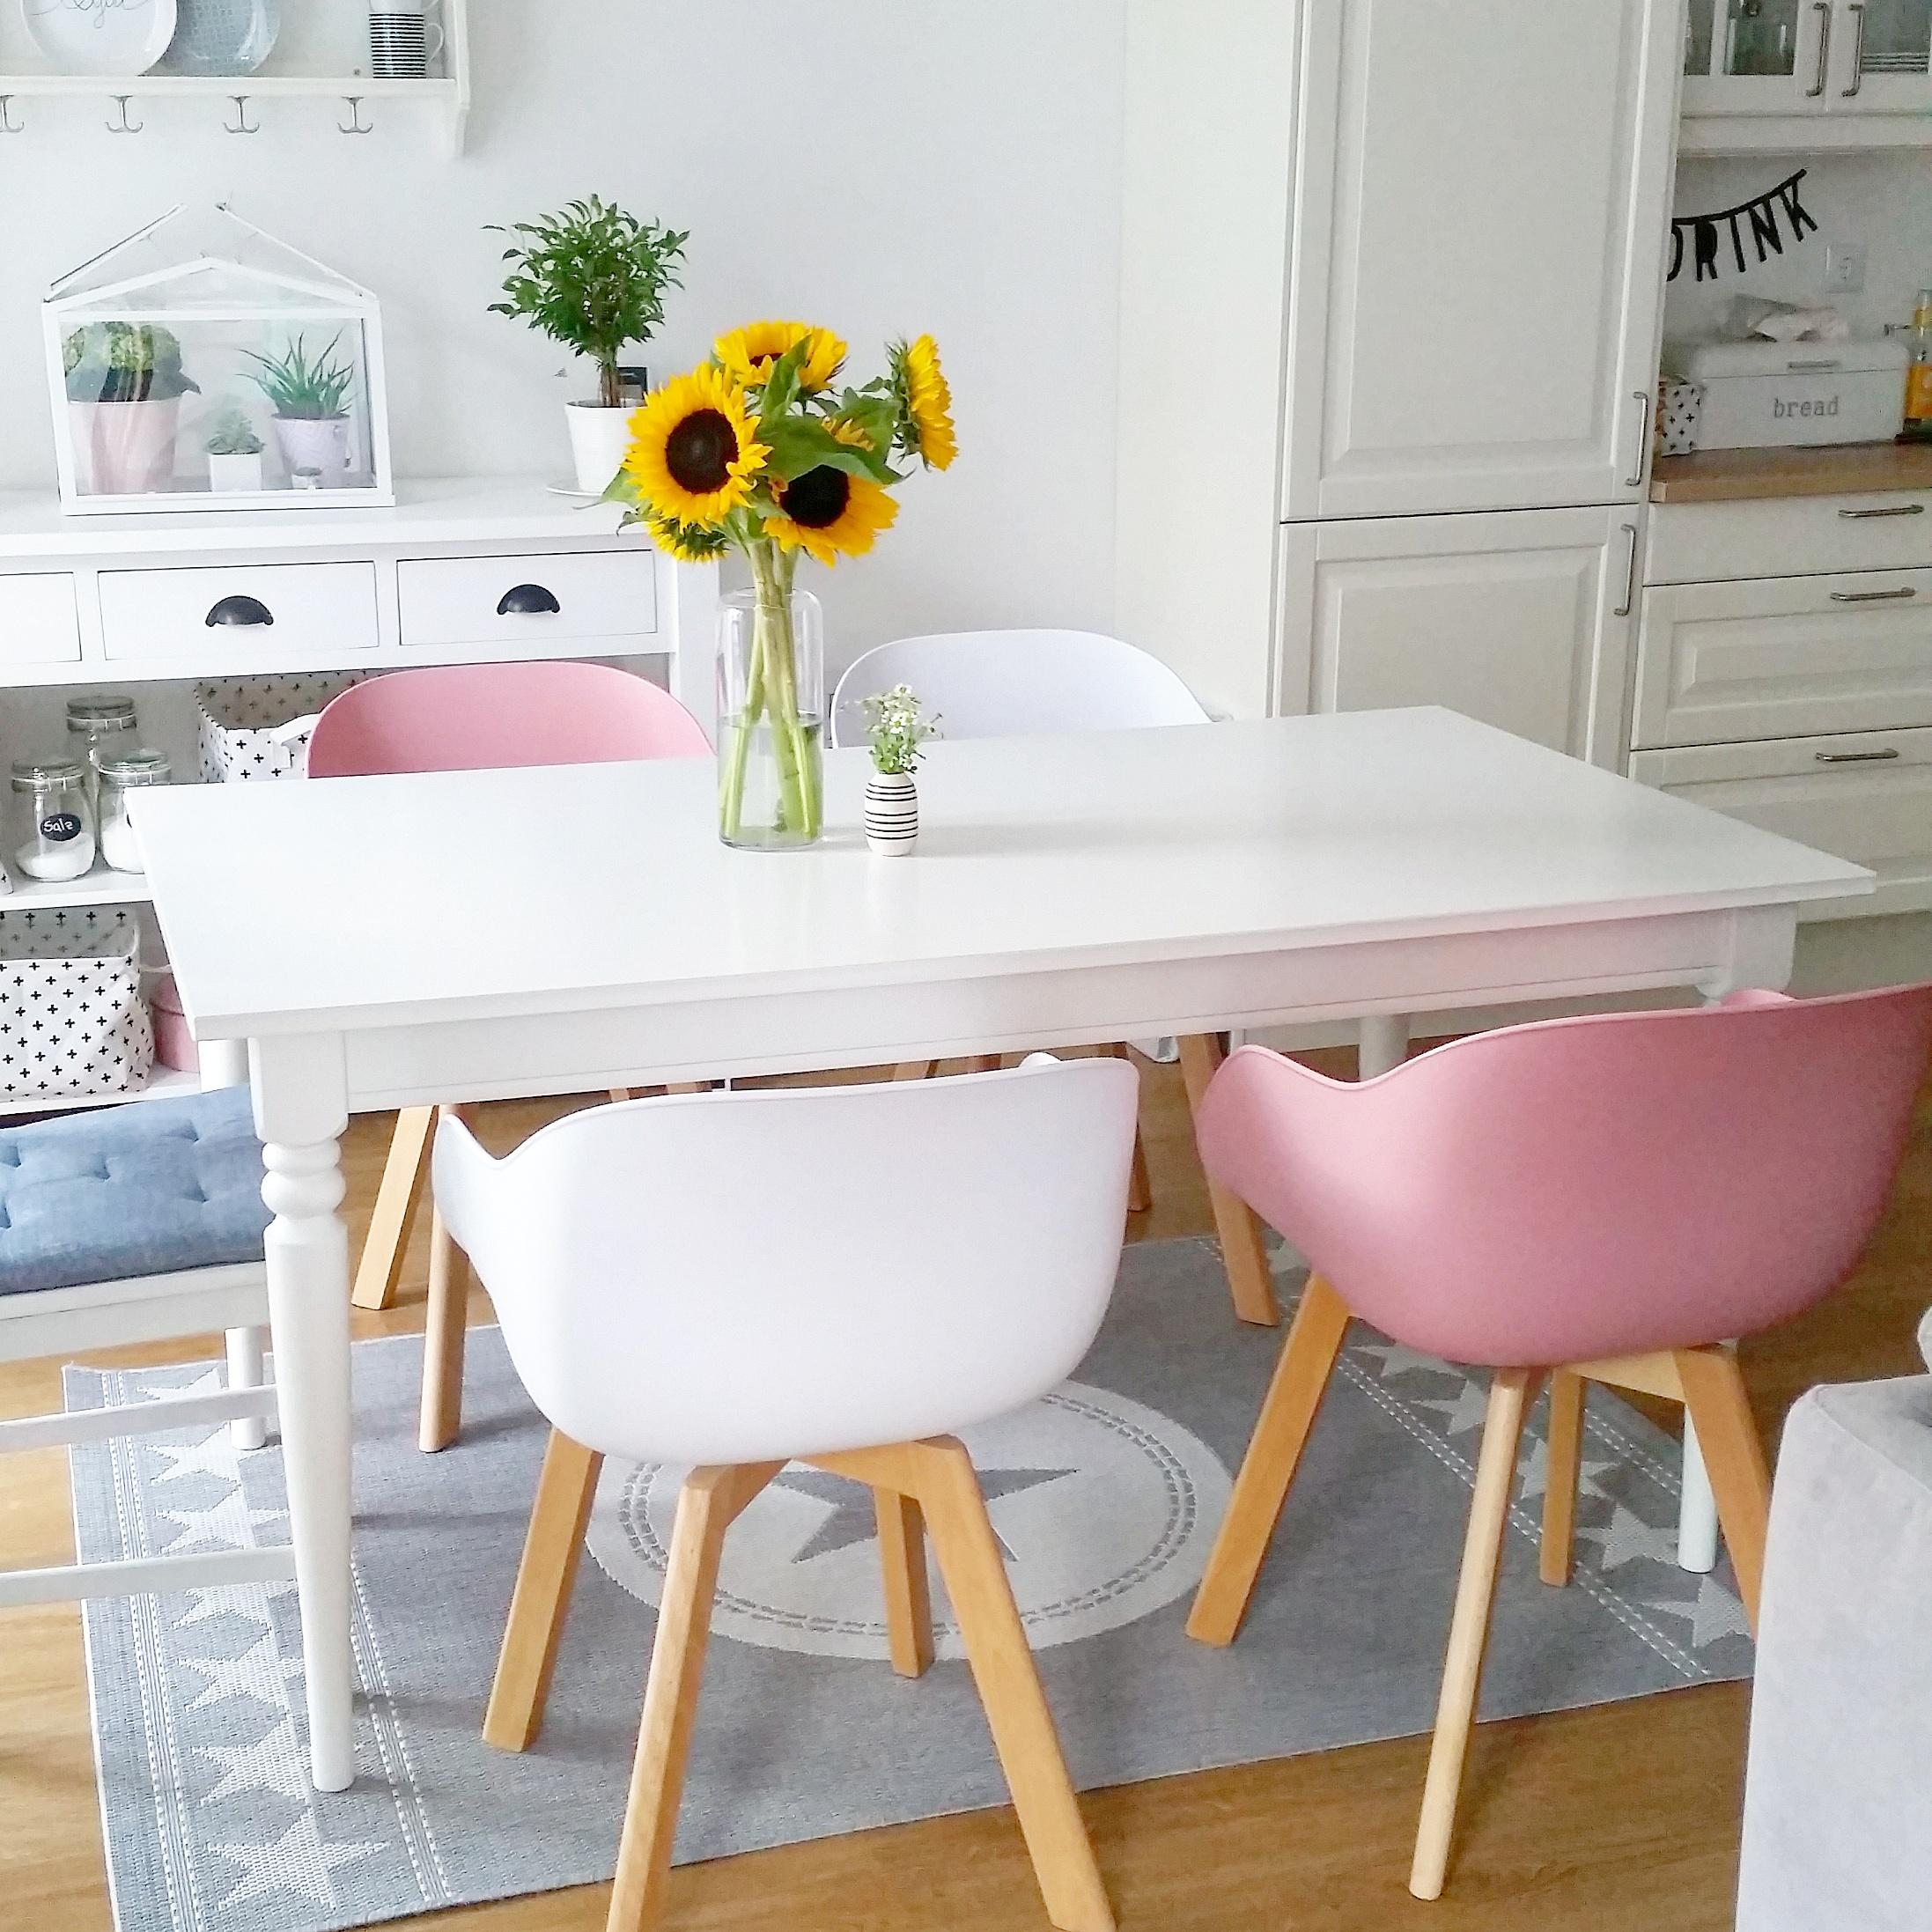 Essbereich im Scandi /Pastell look ☺